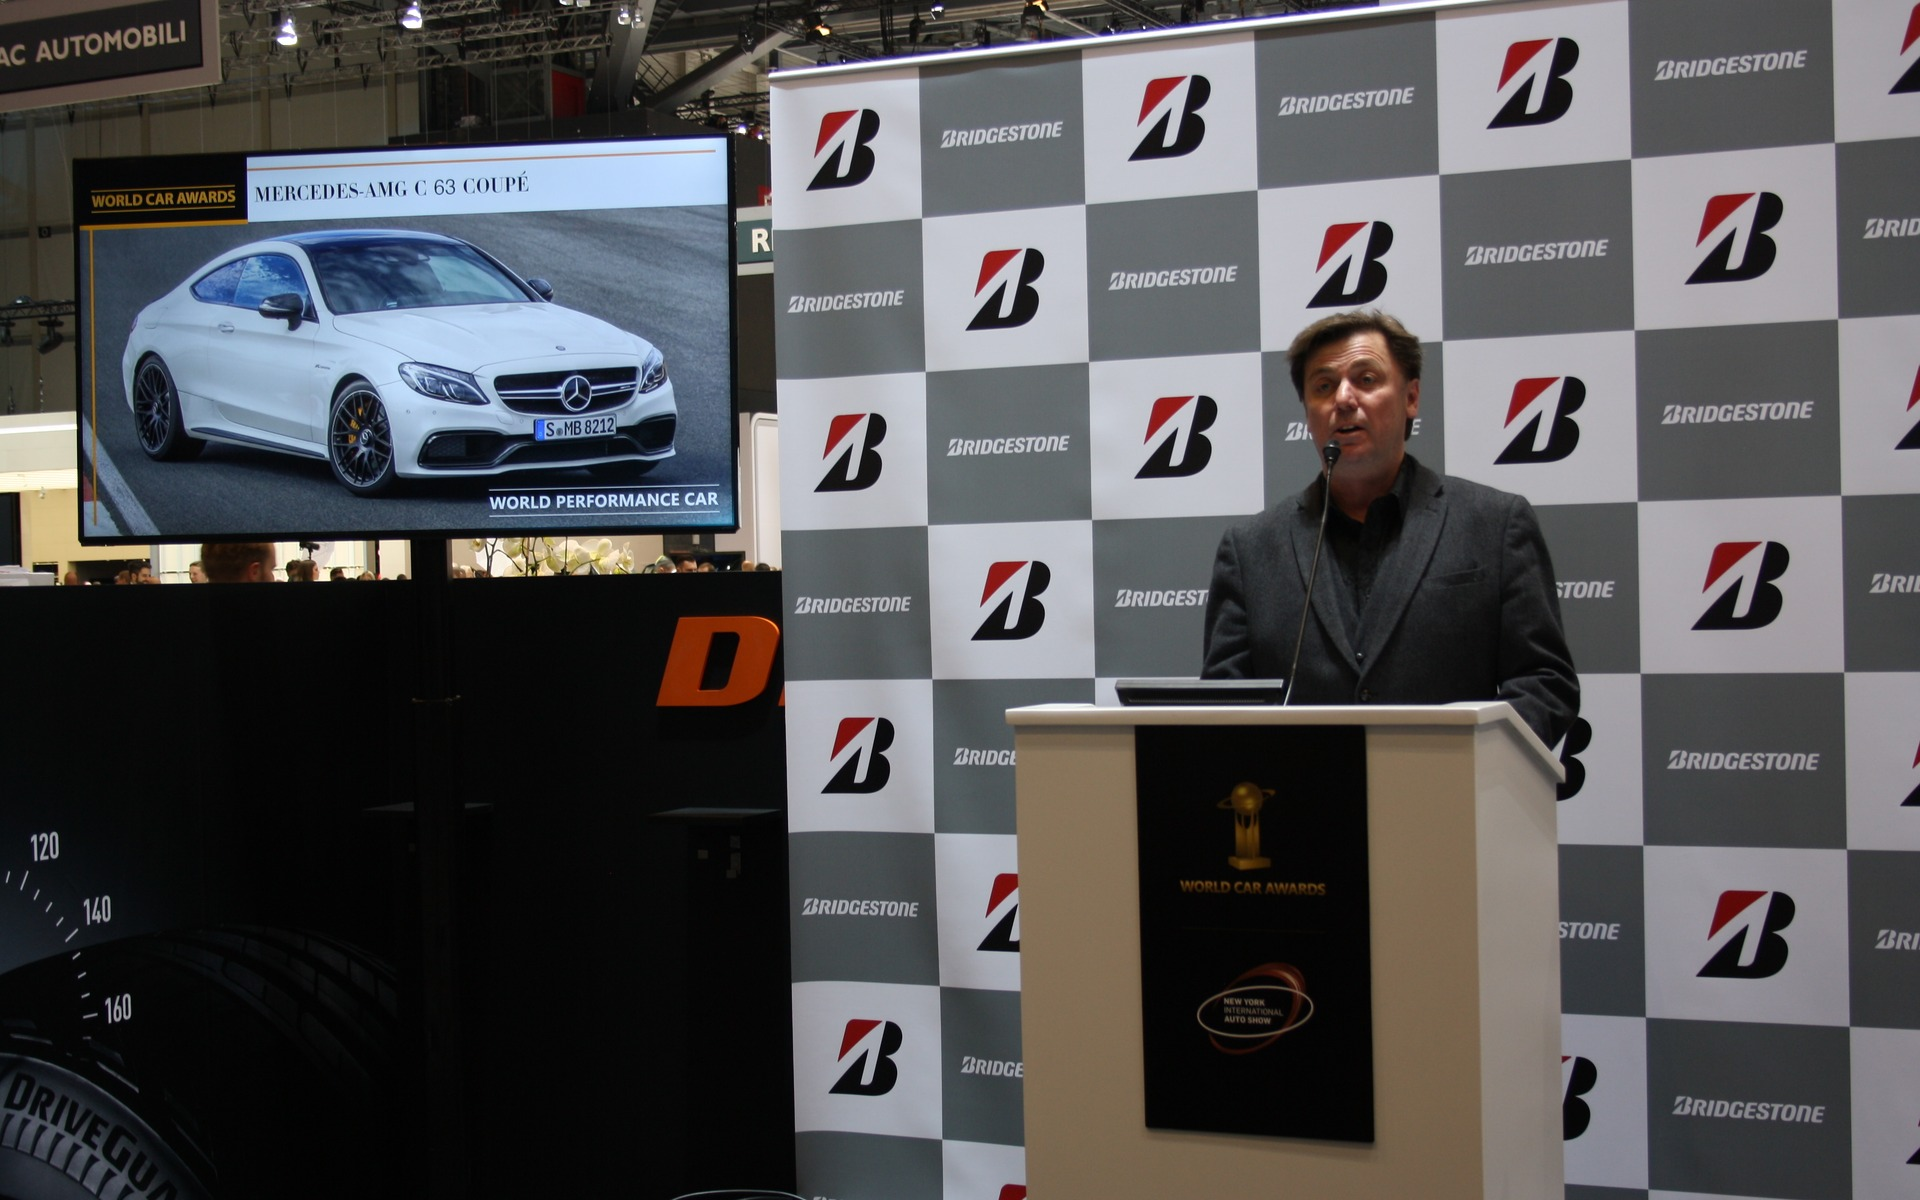 2016 World Performance Car of the Year finalist: Mercedes-AMG C 63 Coupé